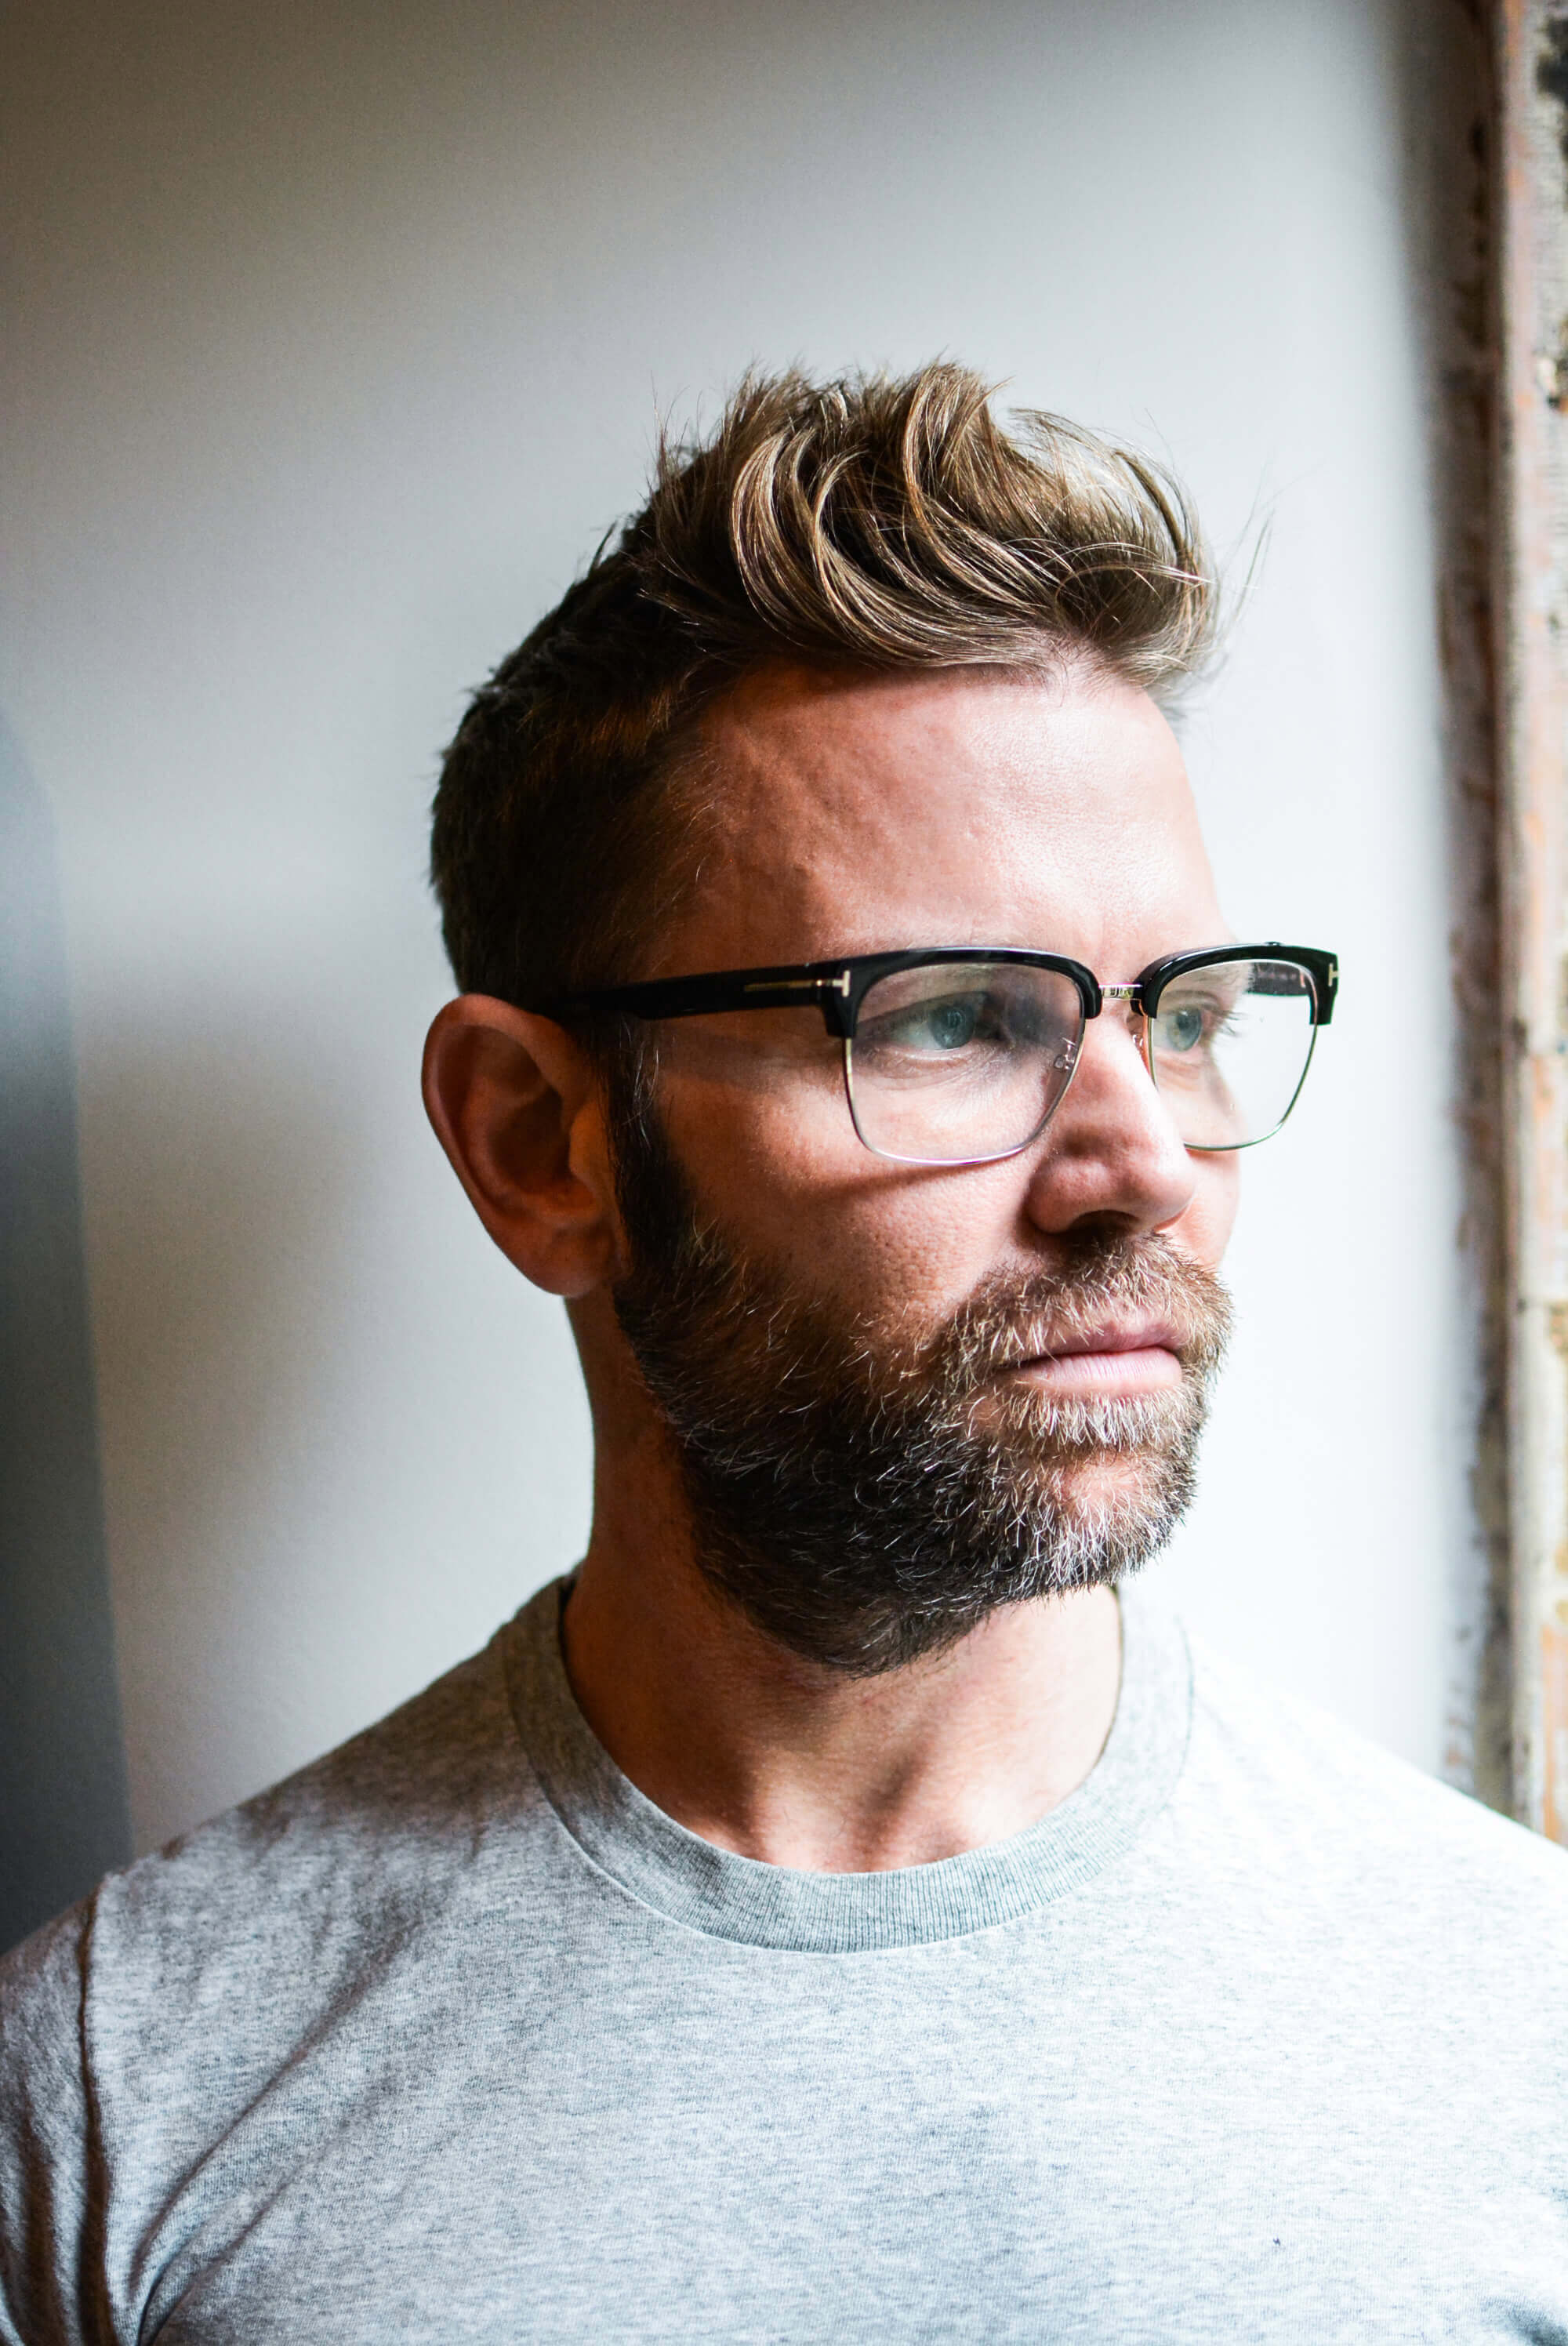 Jay Wells explores different glasses as one way to make you look younger.